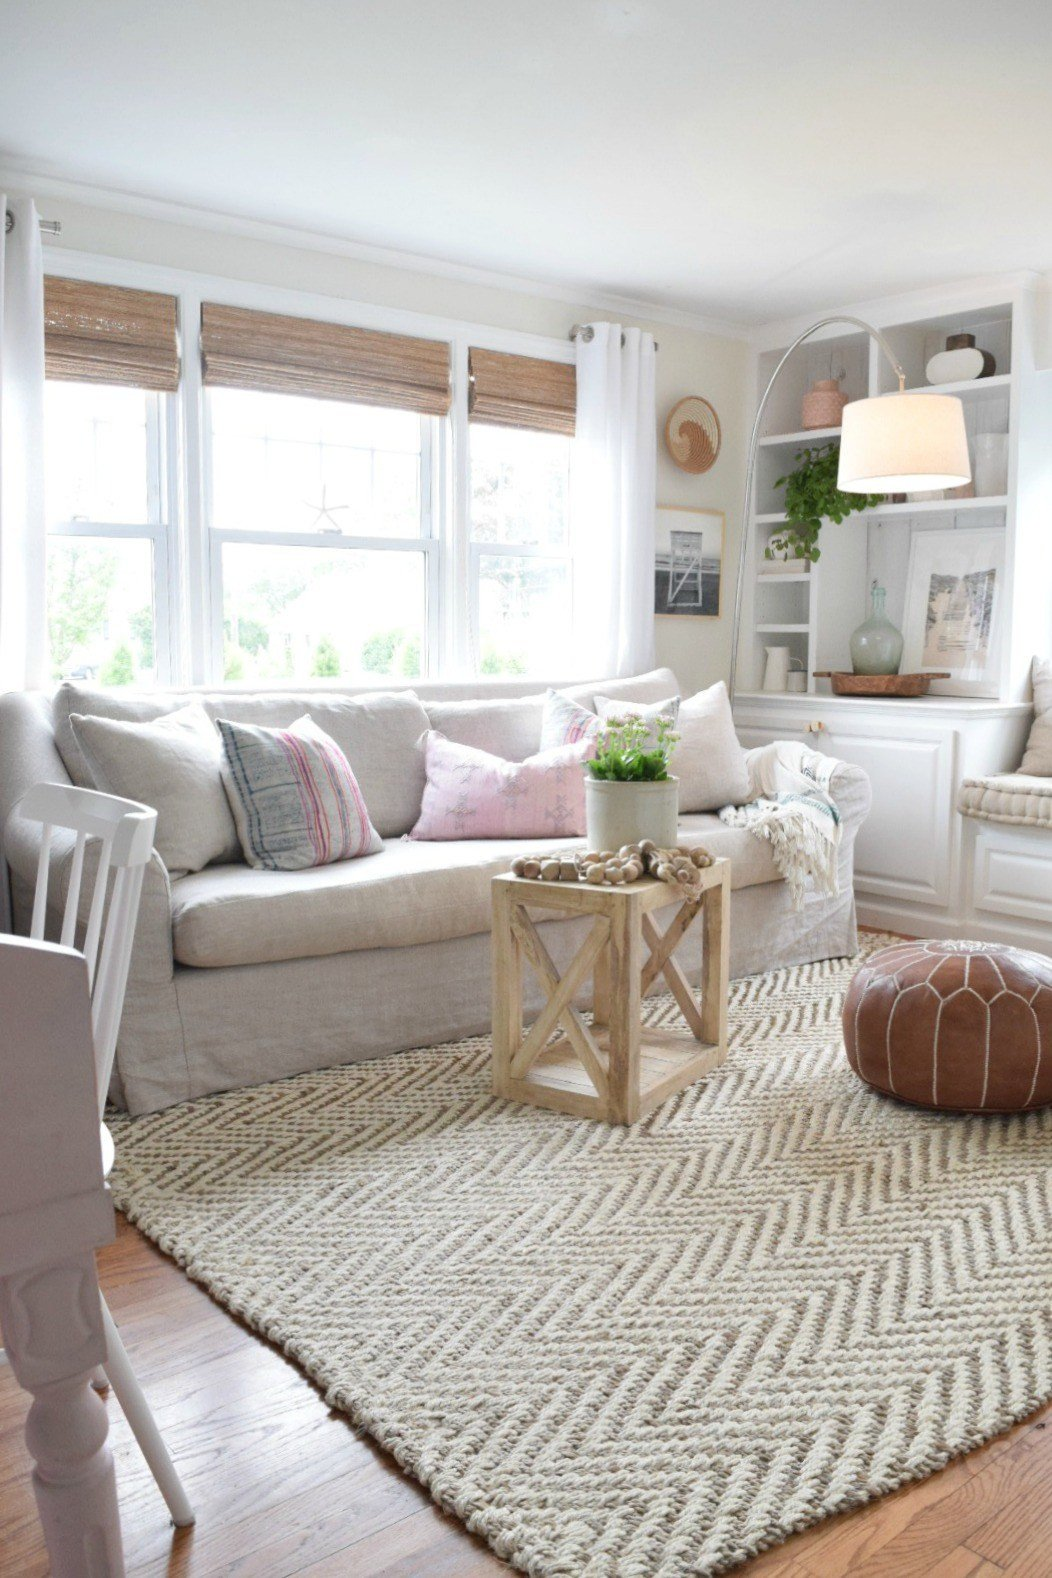 Rug for Living Room Ideas Jute Rug Review In Our Living Room Nesting with Grace